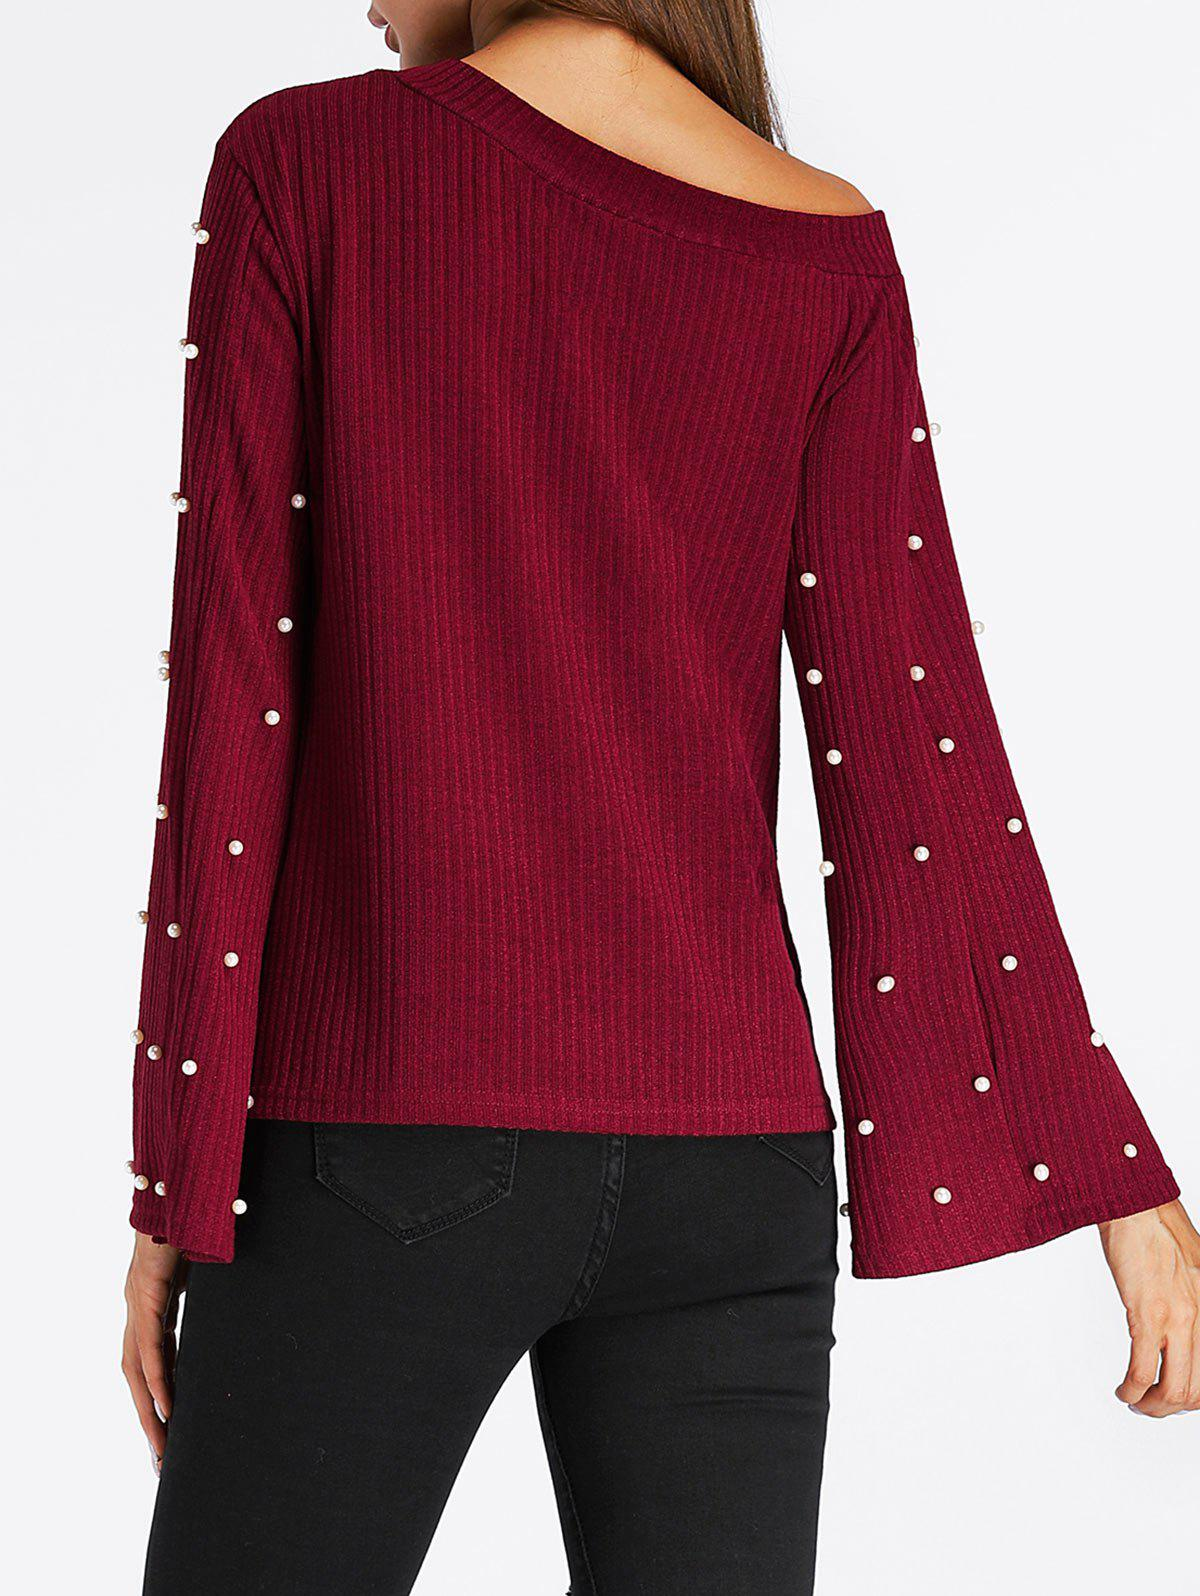 Beaded Bell Sleeve Skew Neck Ribbed Sweater - WINE RED L